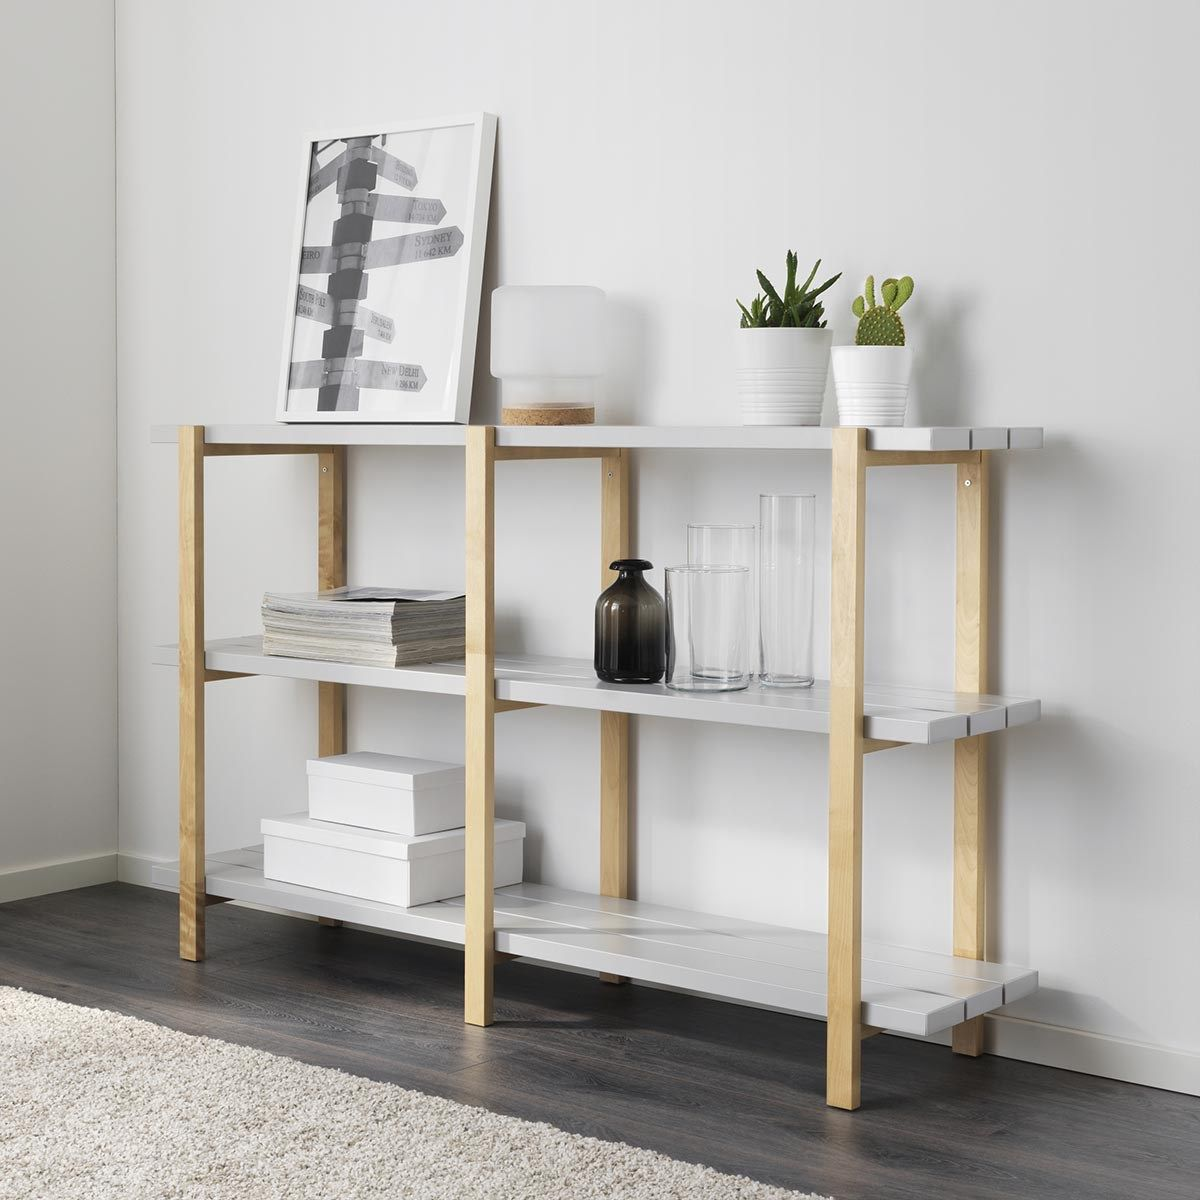 Fresh First look IKEA x HAY YPPERLIG collection